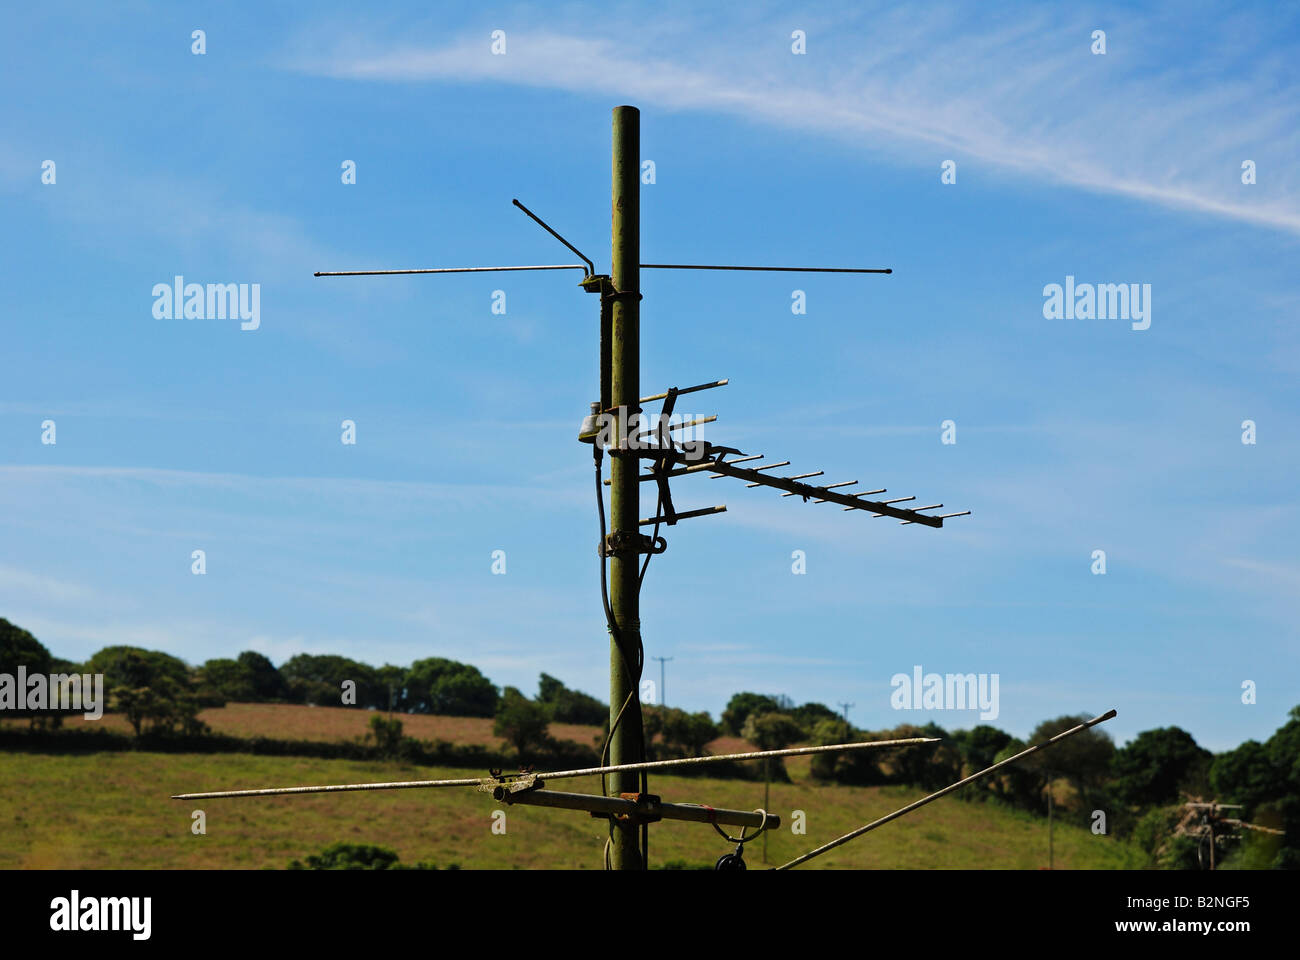 an old style analogue terrestrial televison ariel in the english countryside - Stock Image